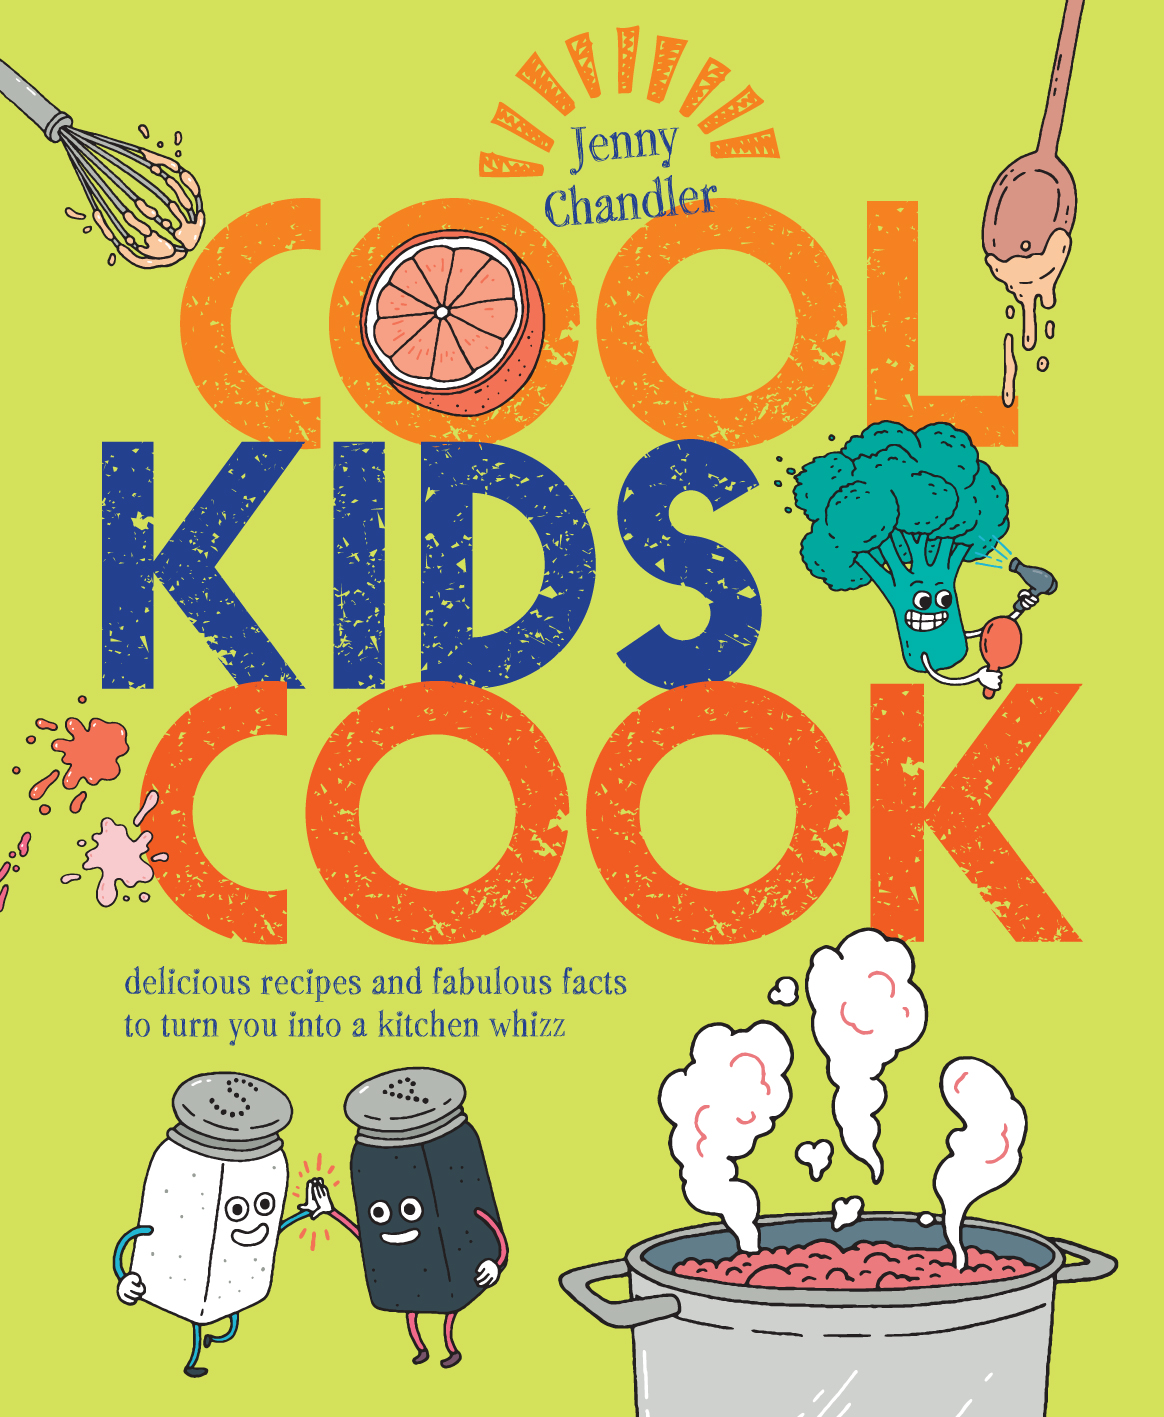 Cool Kids Cook - Jenny Chandler